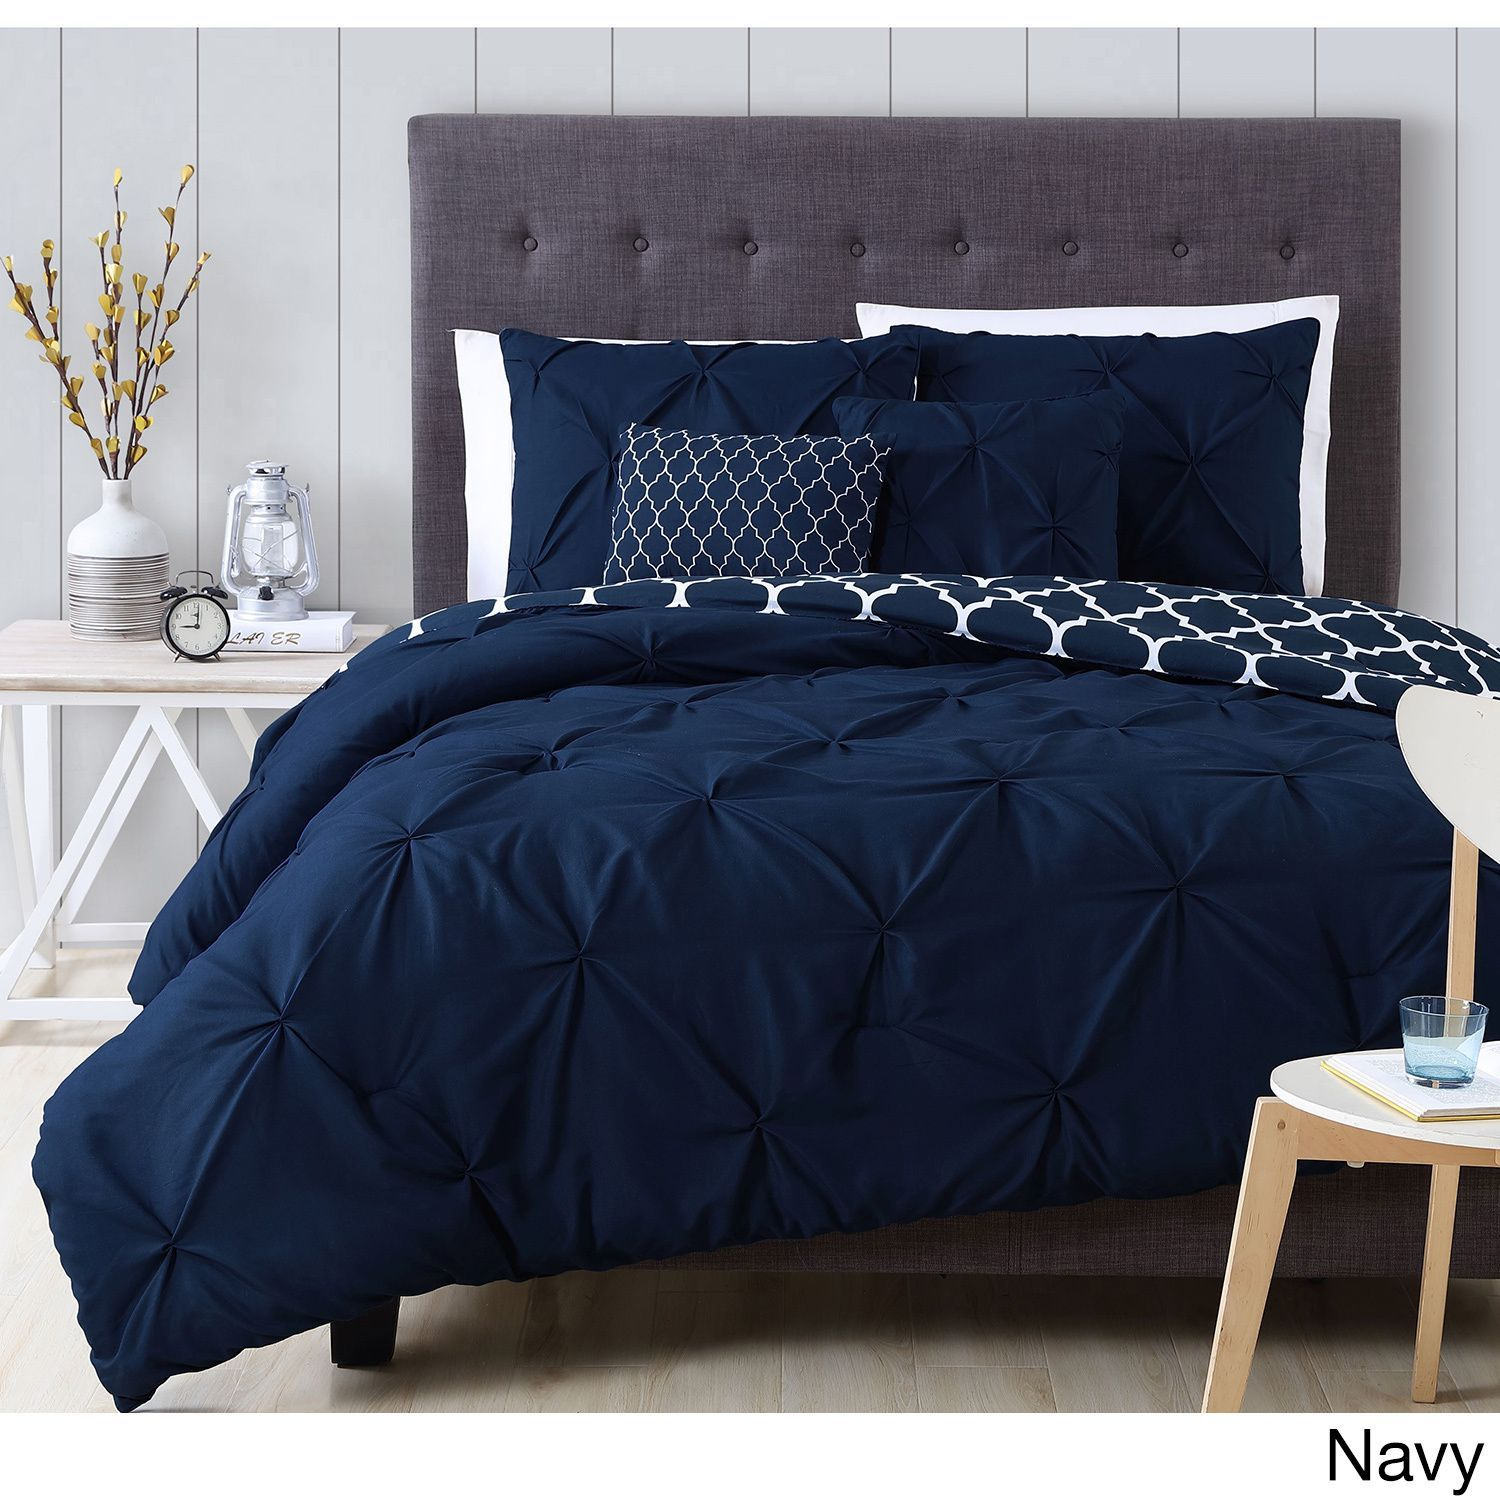 king manor madrid piece pin deals on overstock com set avondale shopping bedroom navy sets blue best the comforter